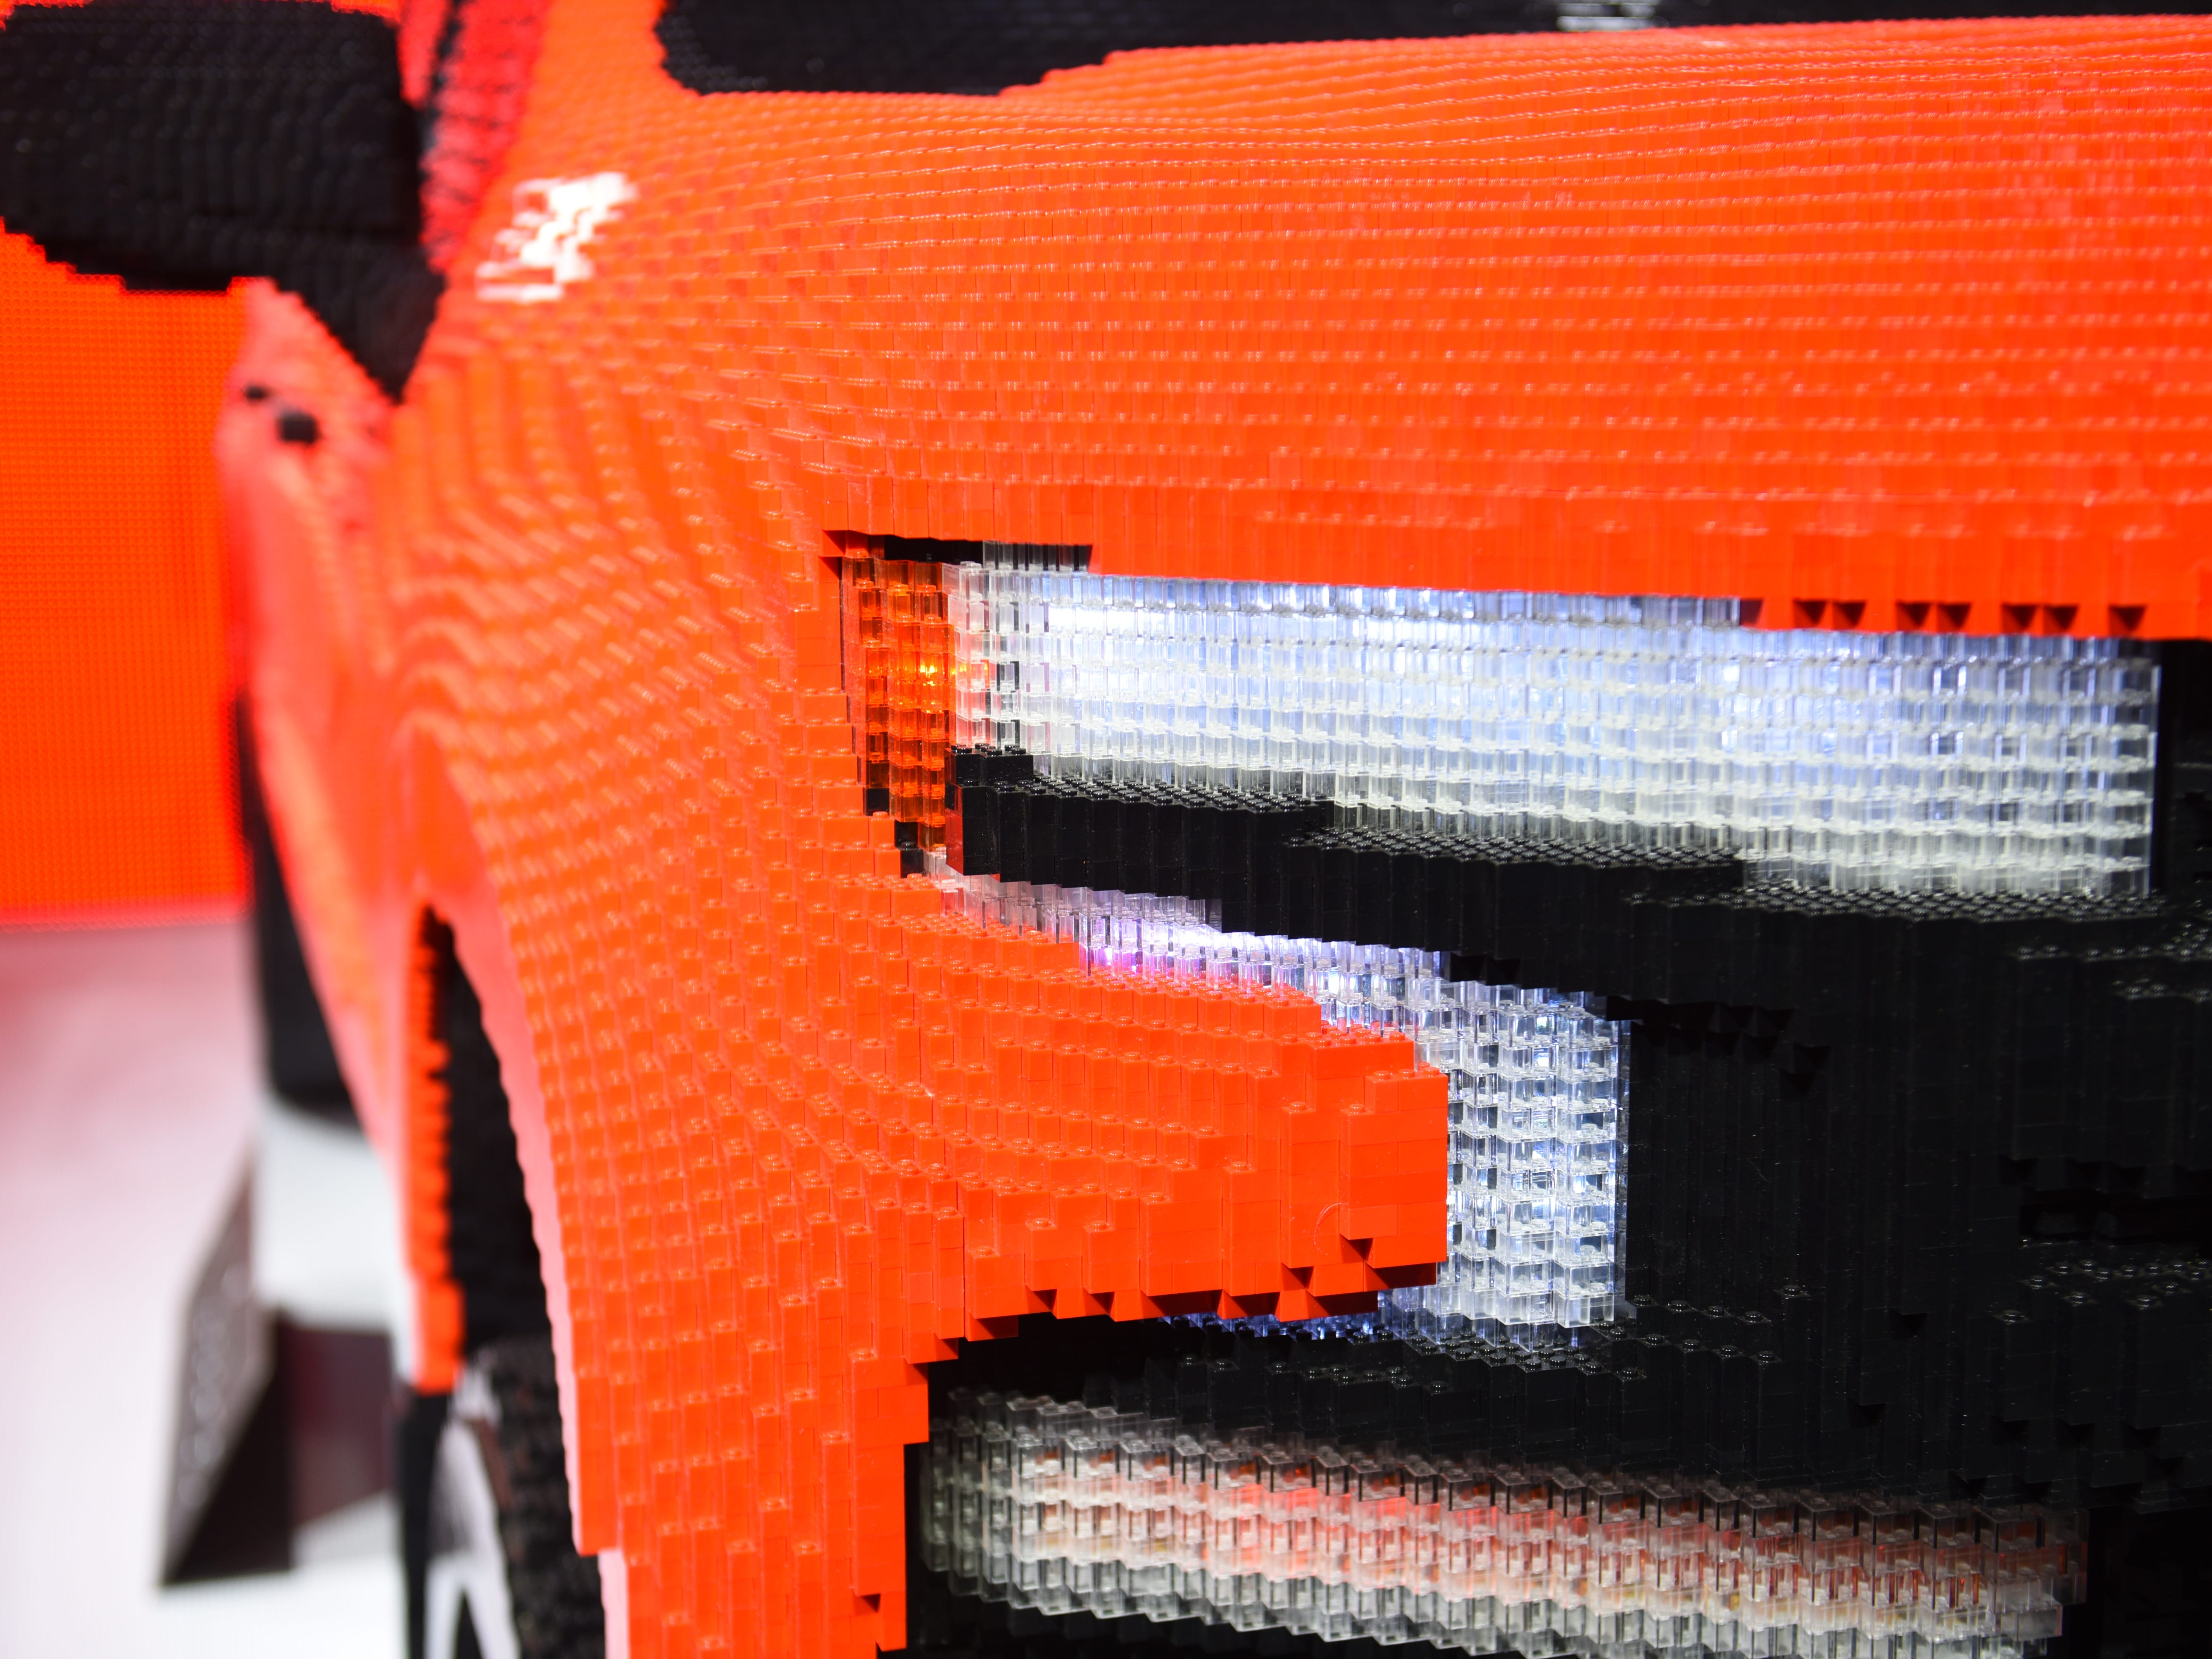 A life-sized Lego Chevrolet Silverado show the details of the lego creation